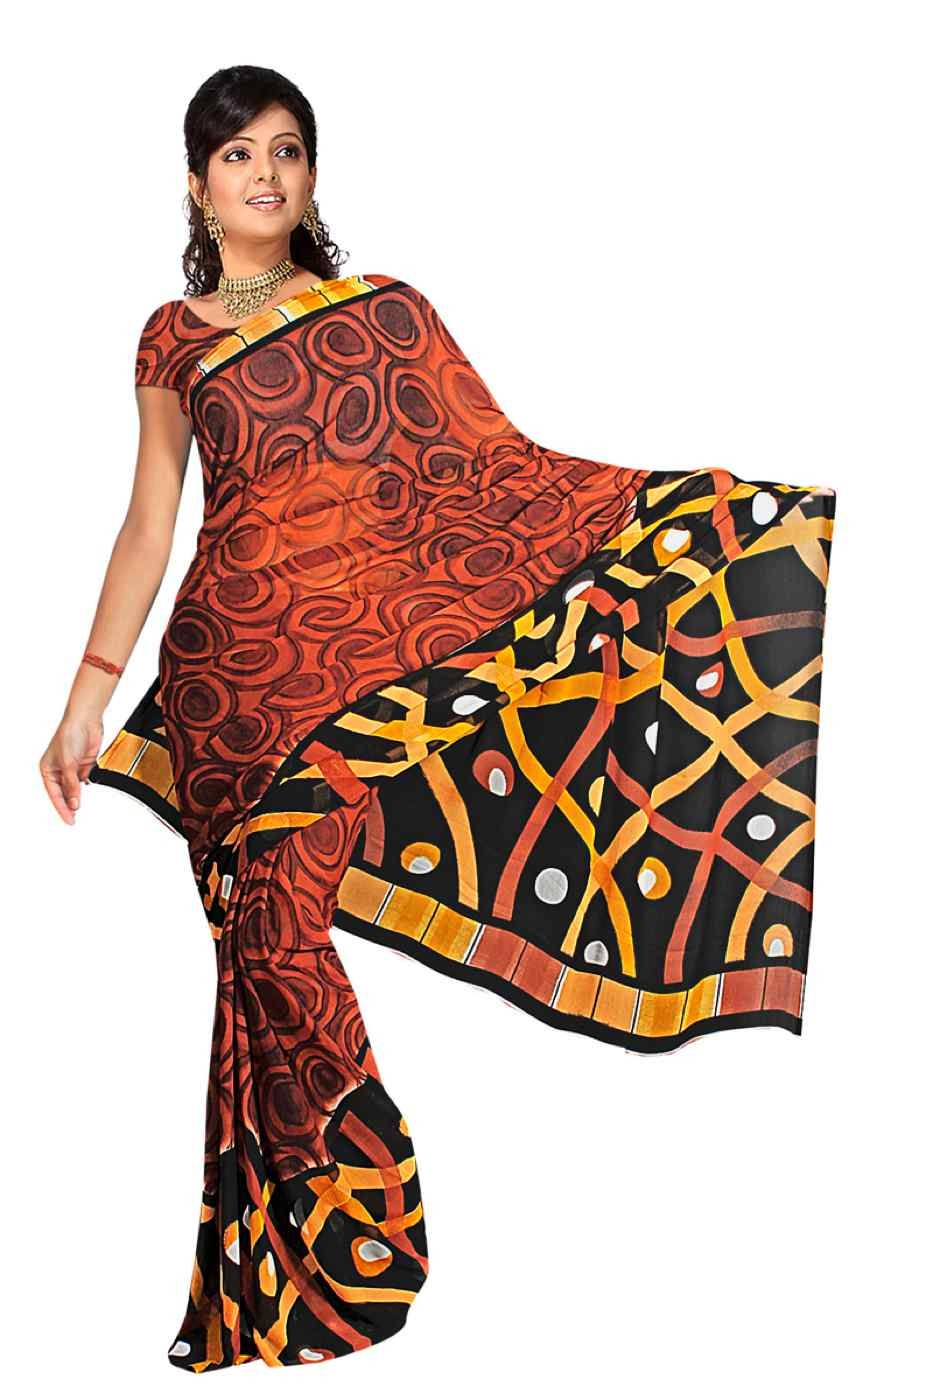 Dalaja Georgette Printed Casual Saree Sari Bellydance fabric